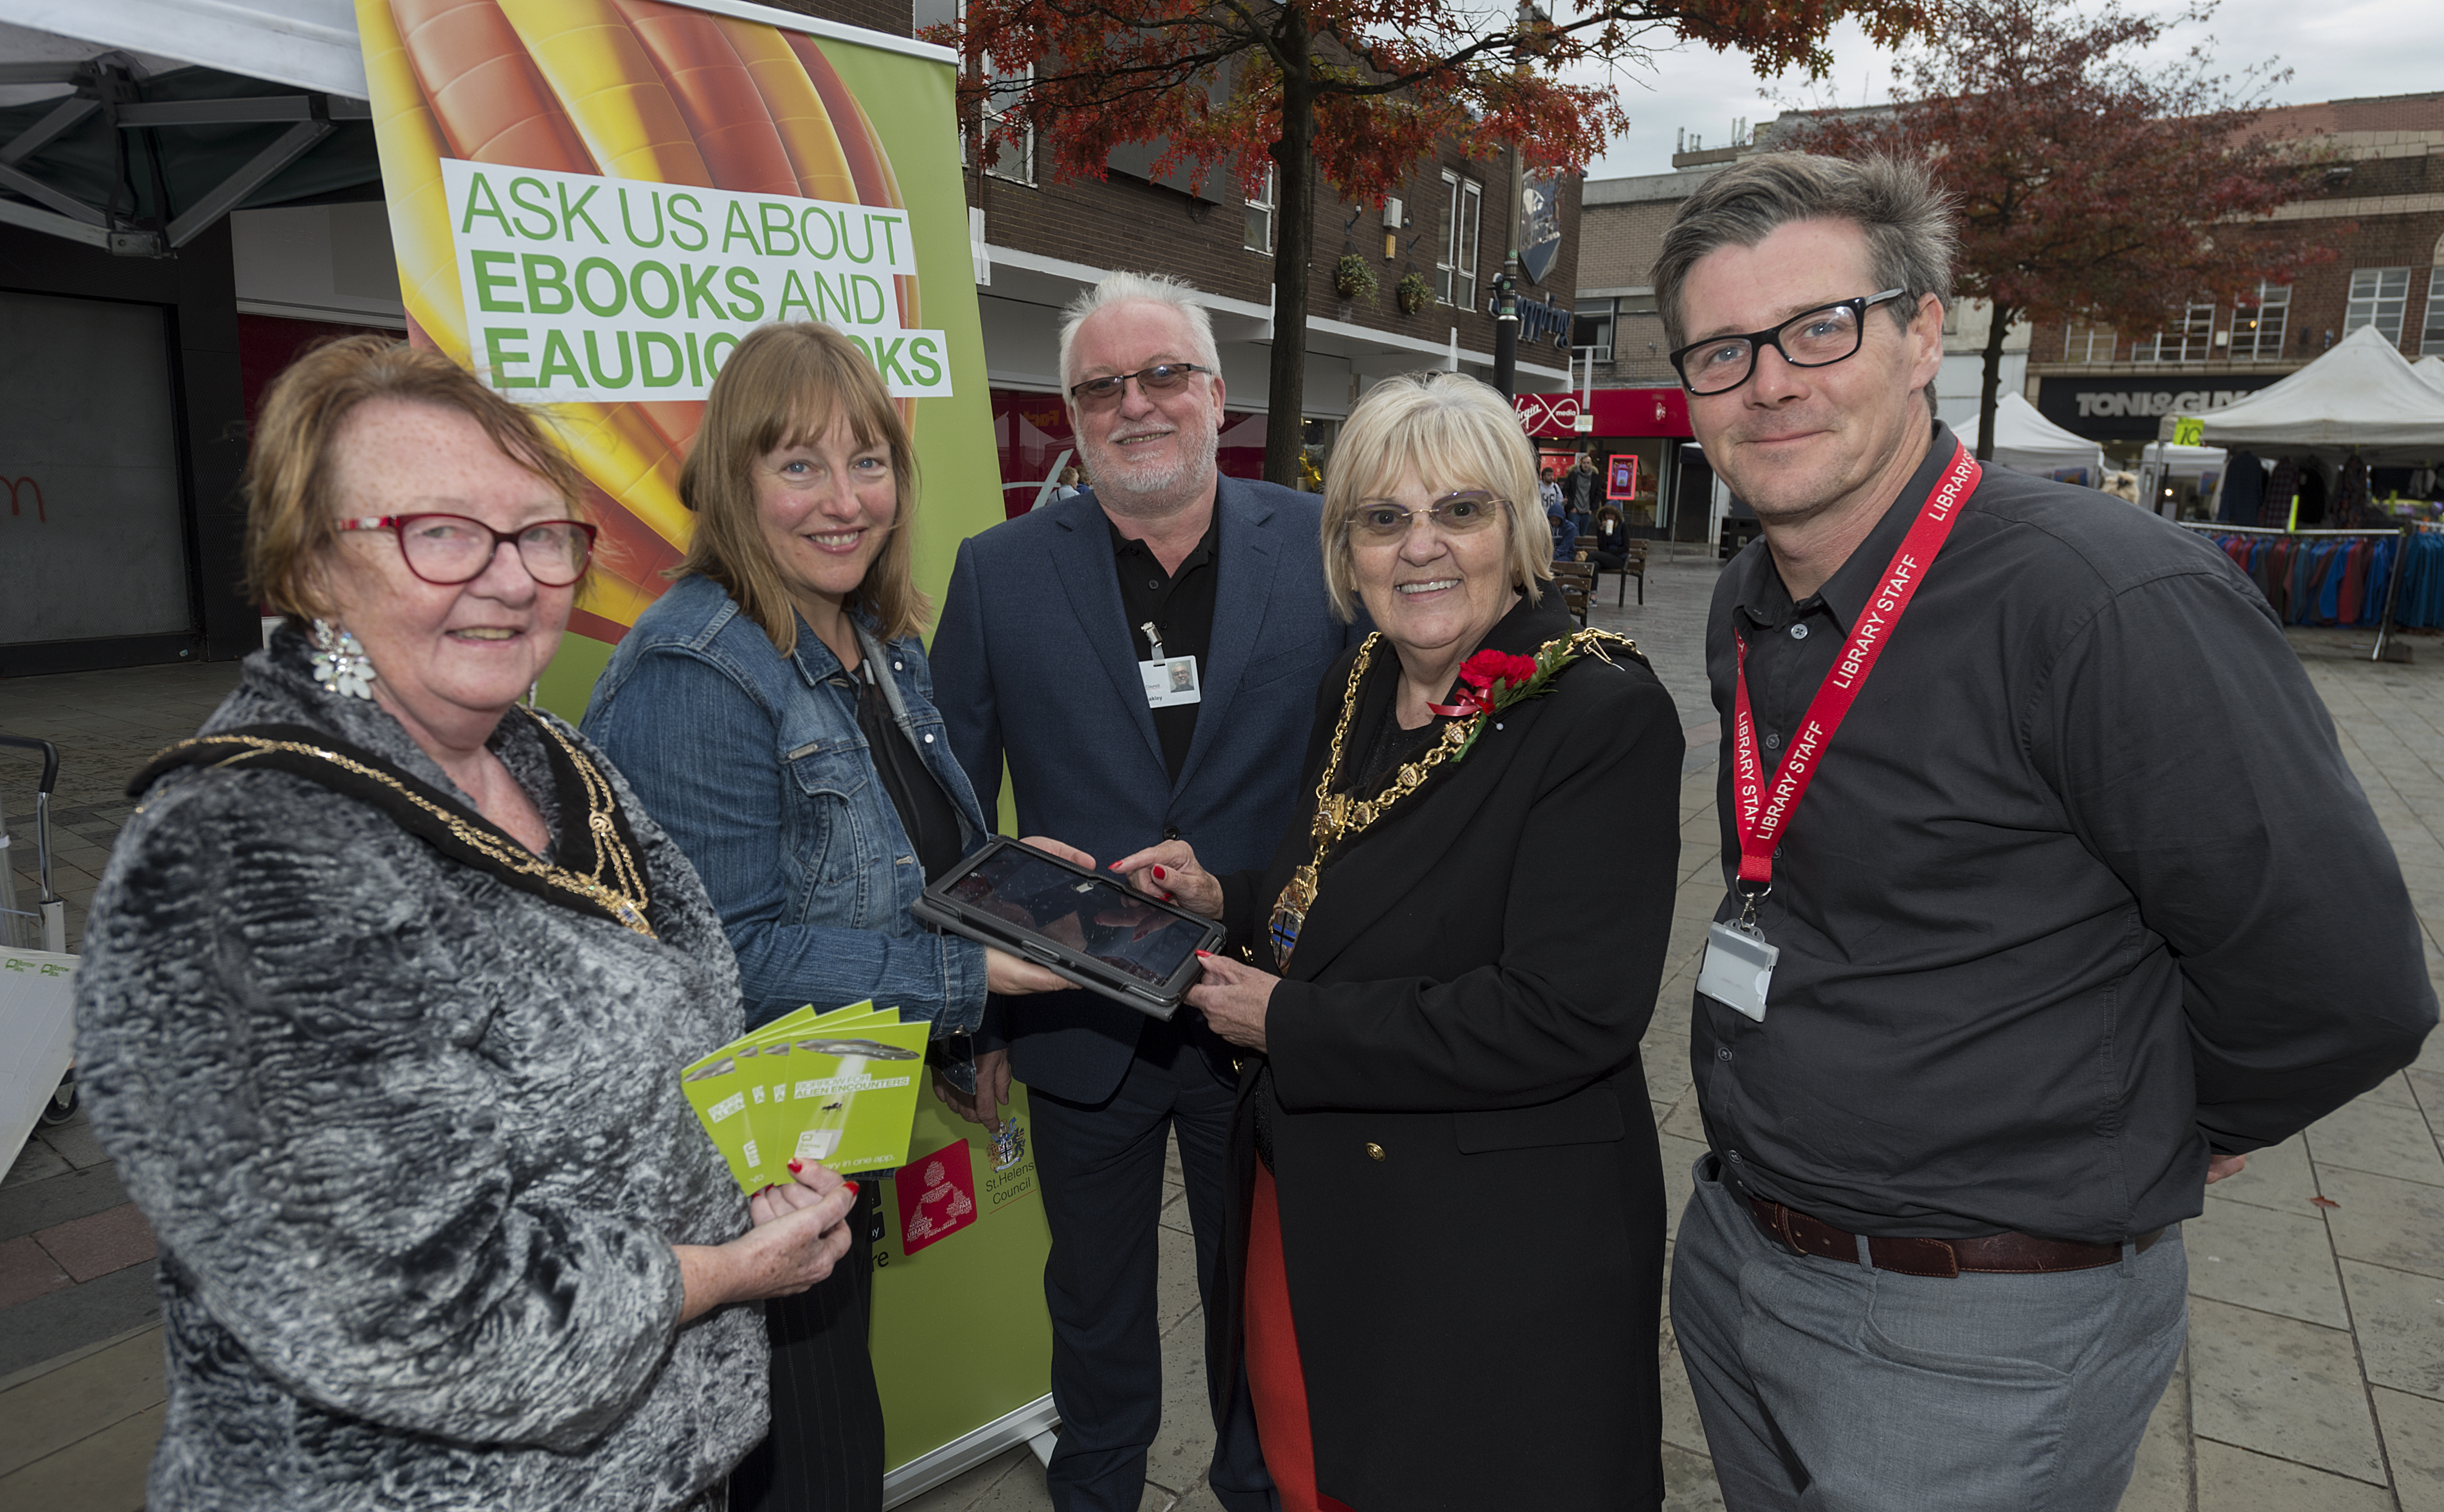 , Digital service proves a real hit with library members, Skem News - The Top Source for Skelmersdale News